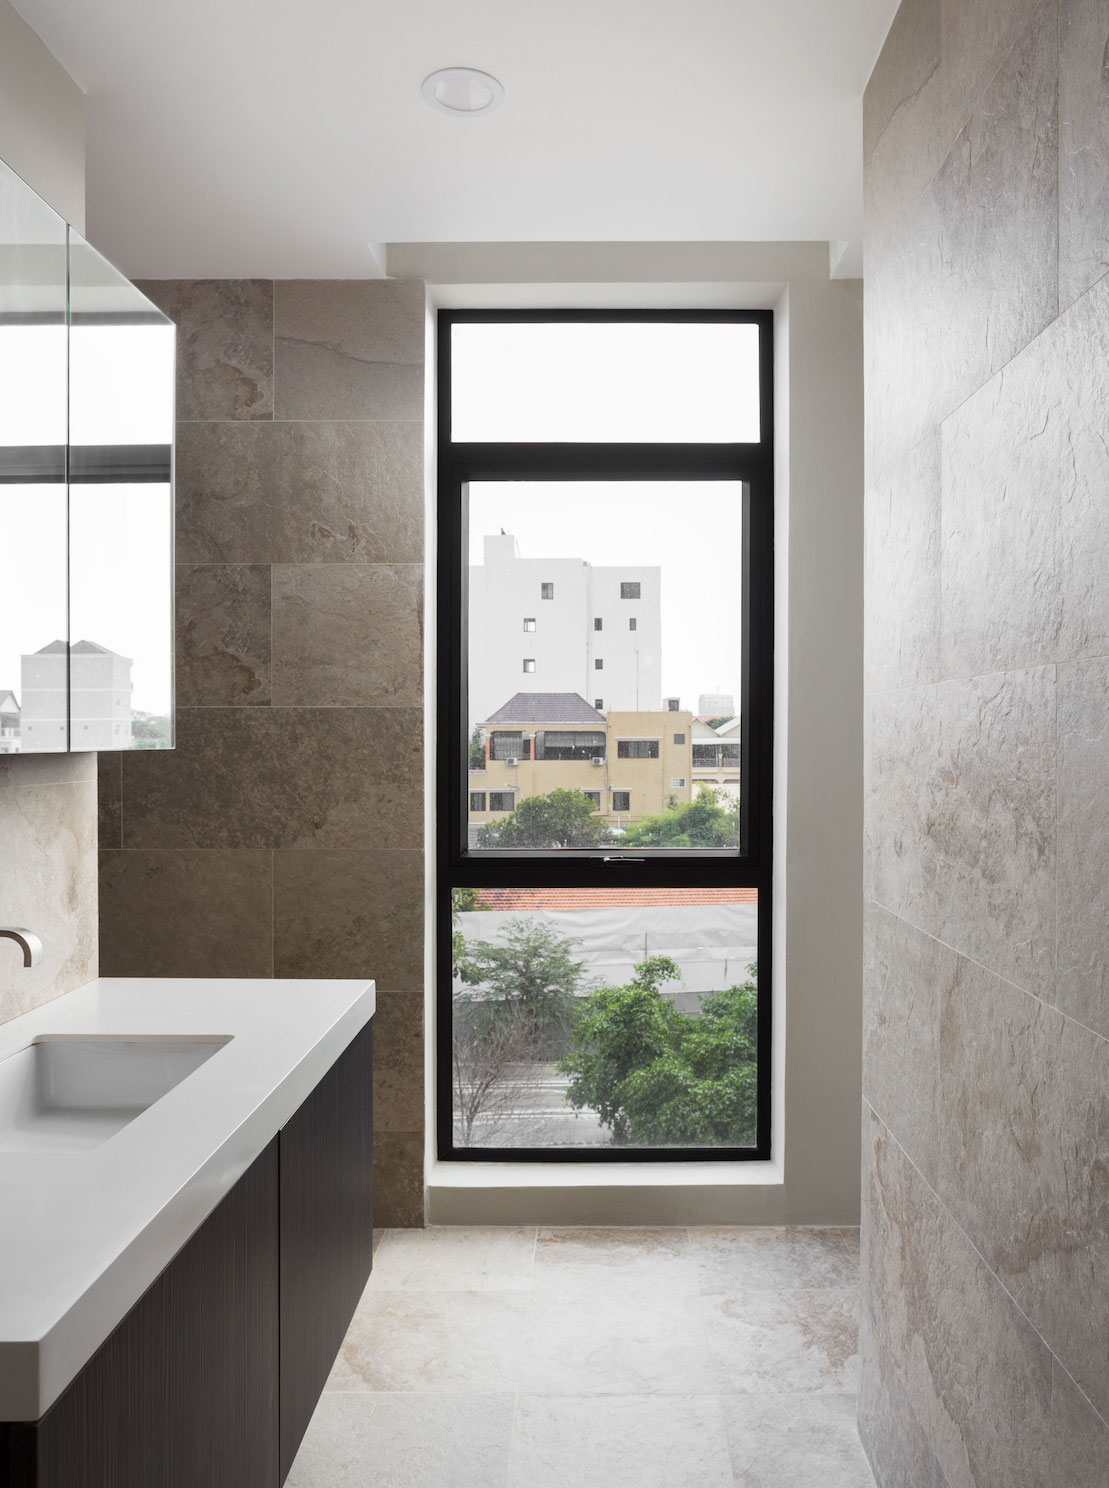 two-bedroom-master-bathroom-view-third-floor-habitat-condos-phnom-penh-cambodia.jpg